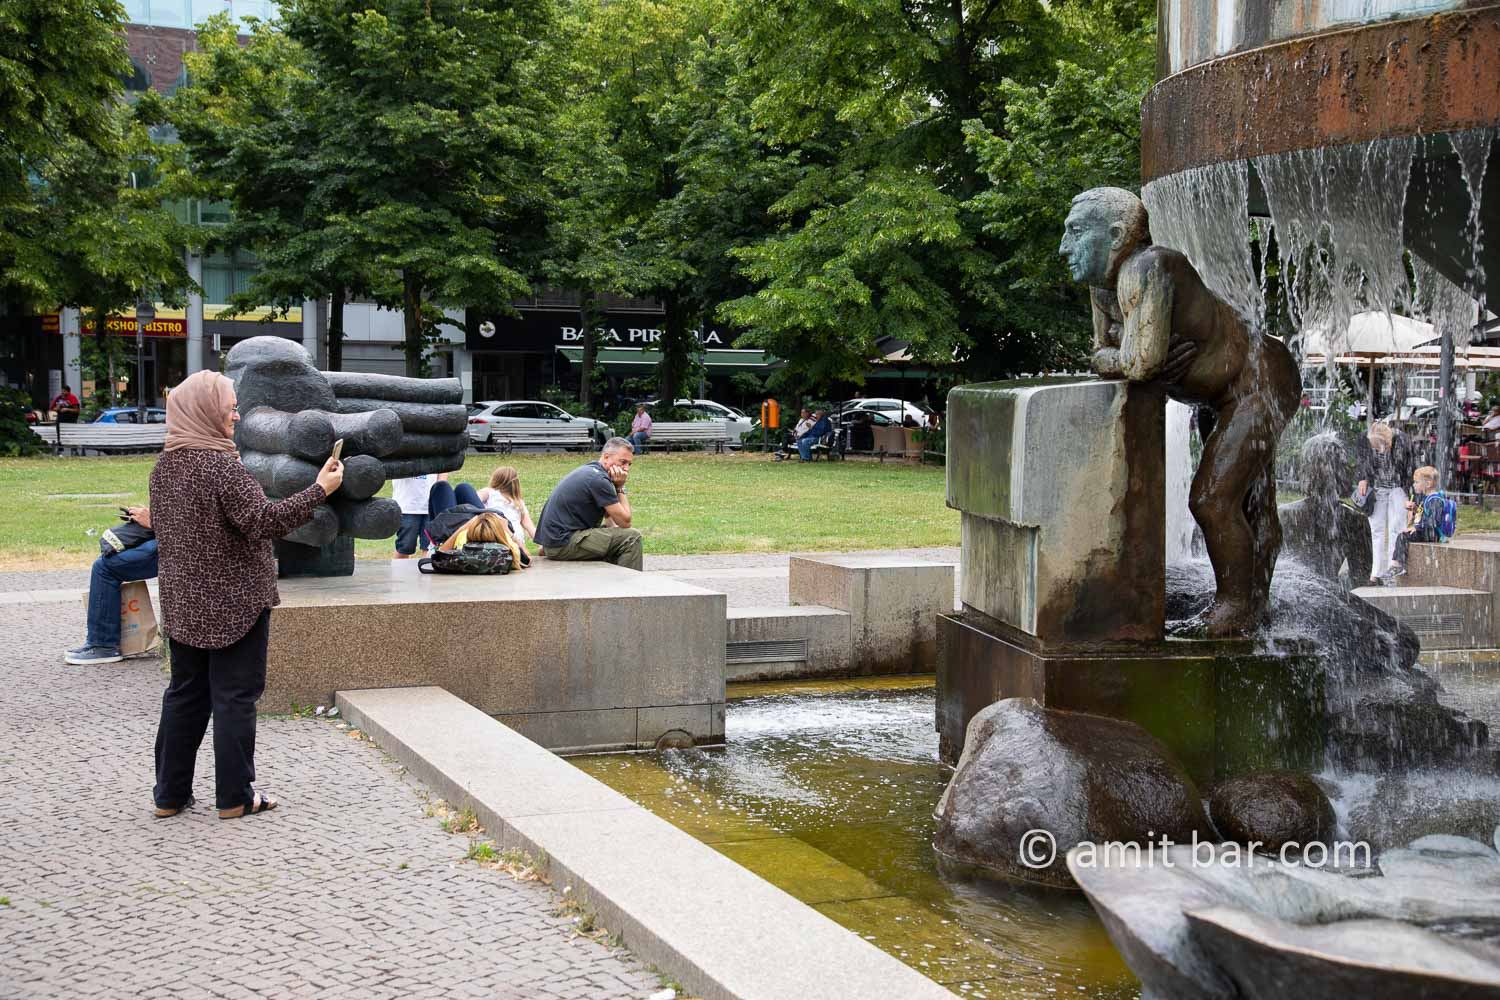 Can I help, you, Miss?: A woman is taking a photo of sculpture